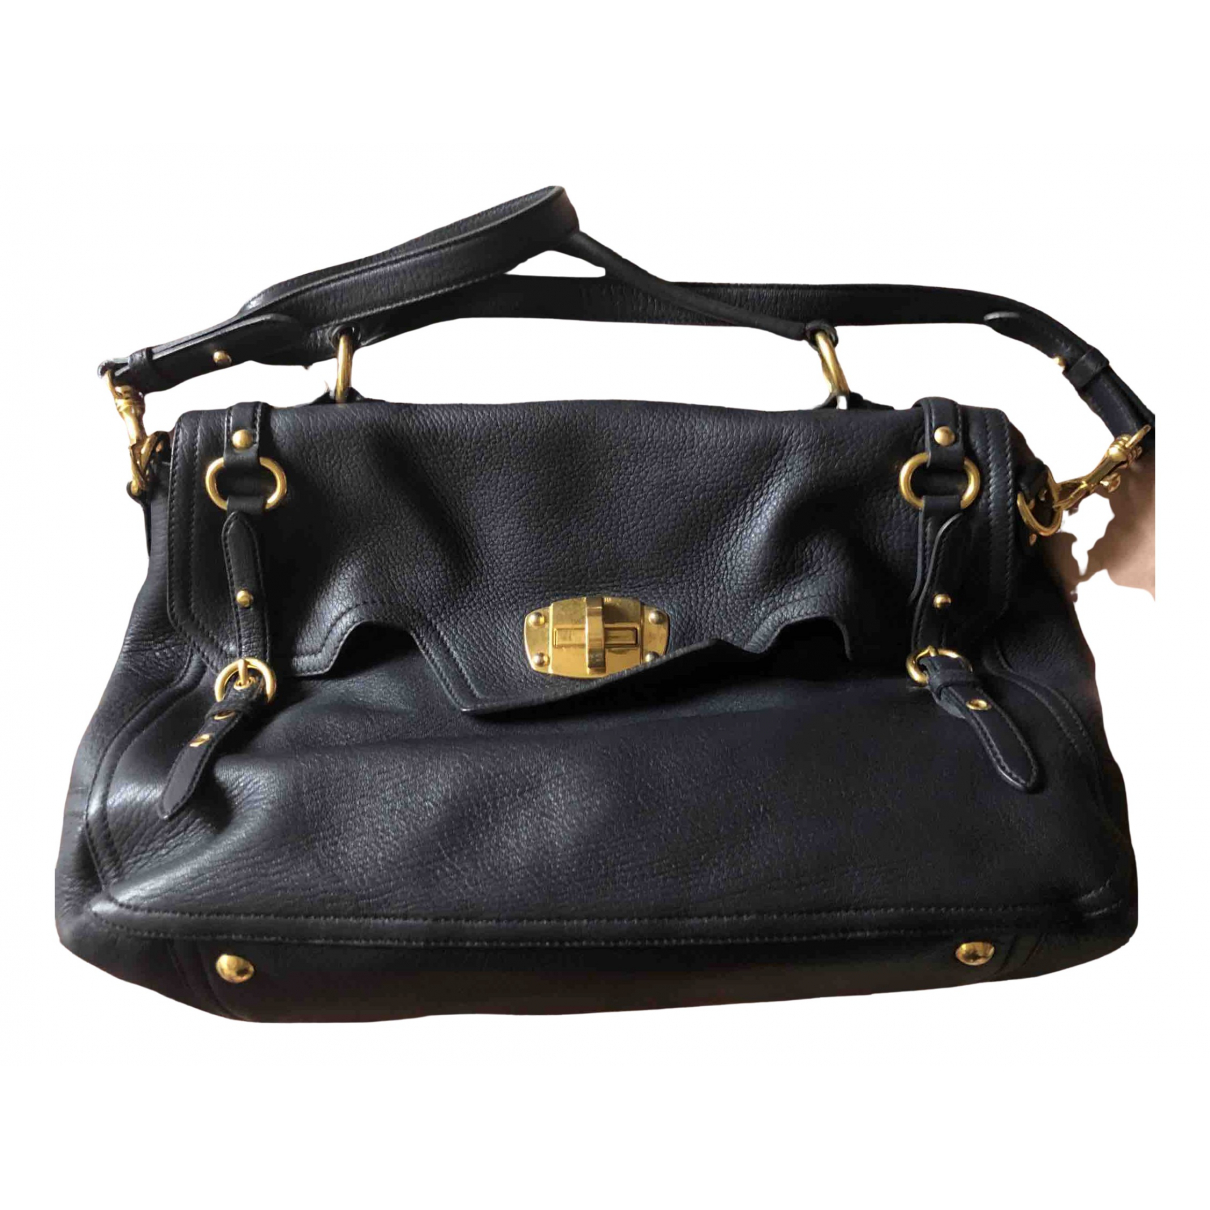 Miu Miu \N Navy Leather handbag for Women \N